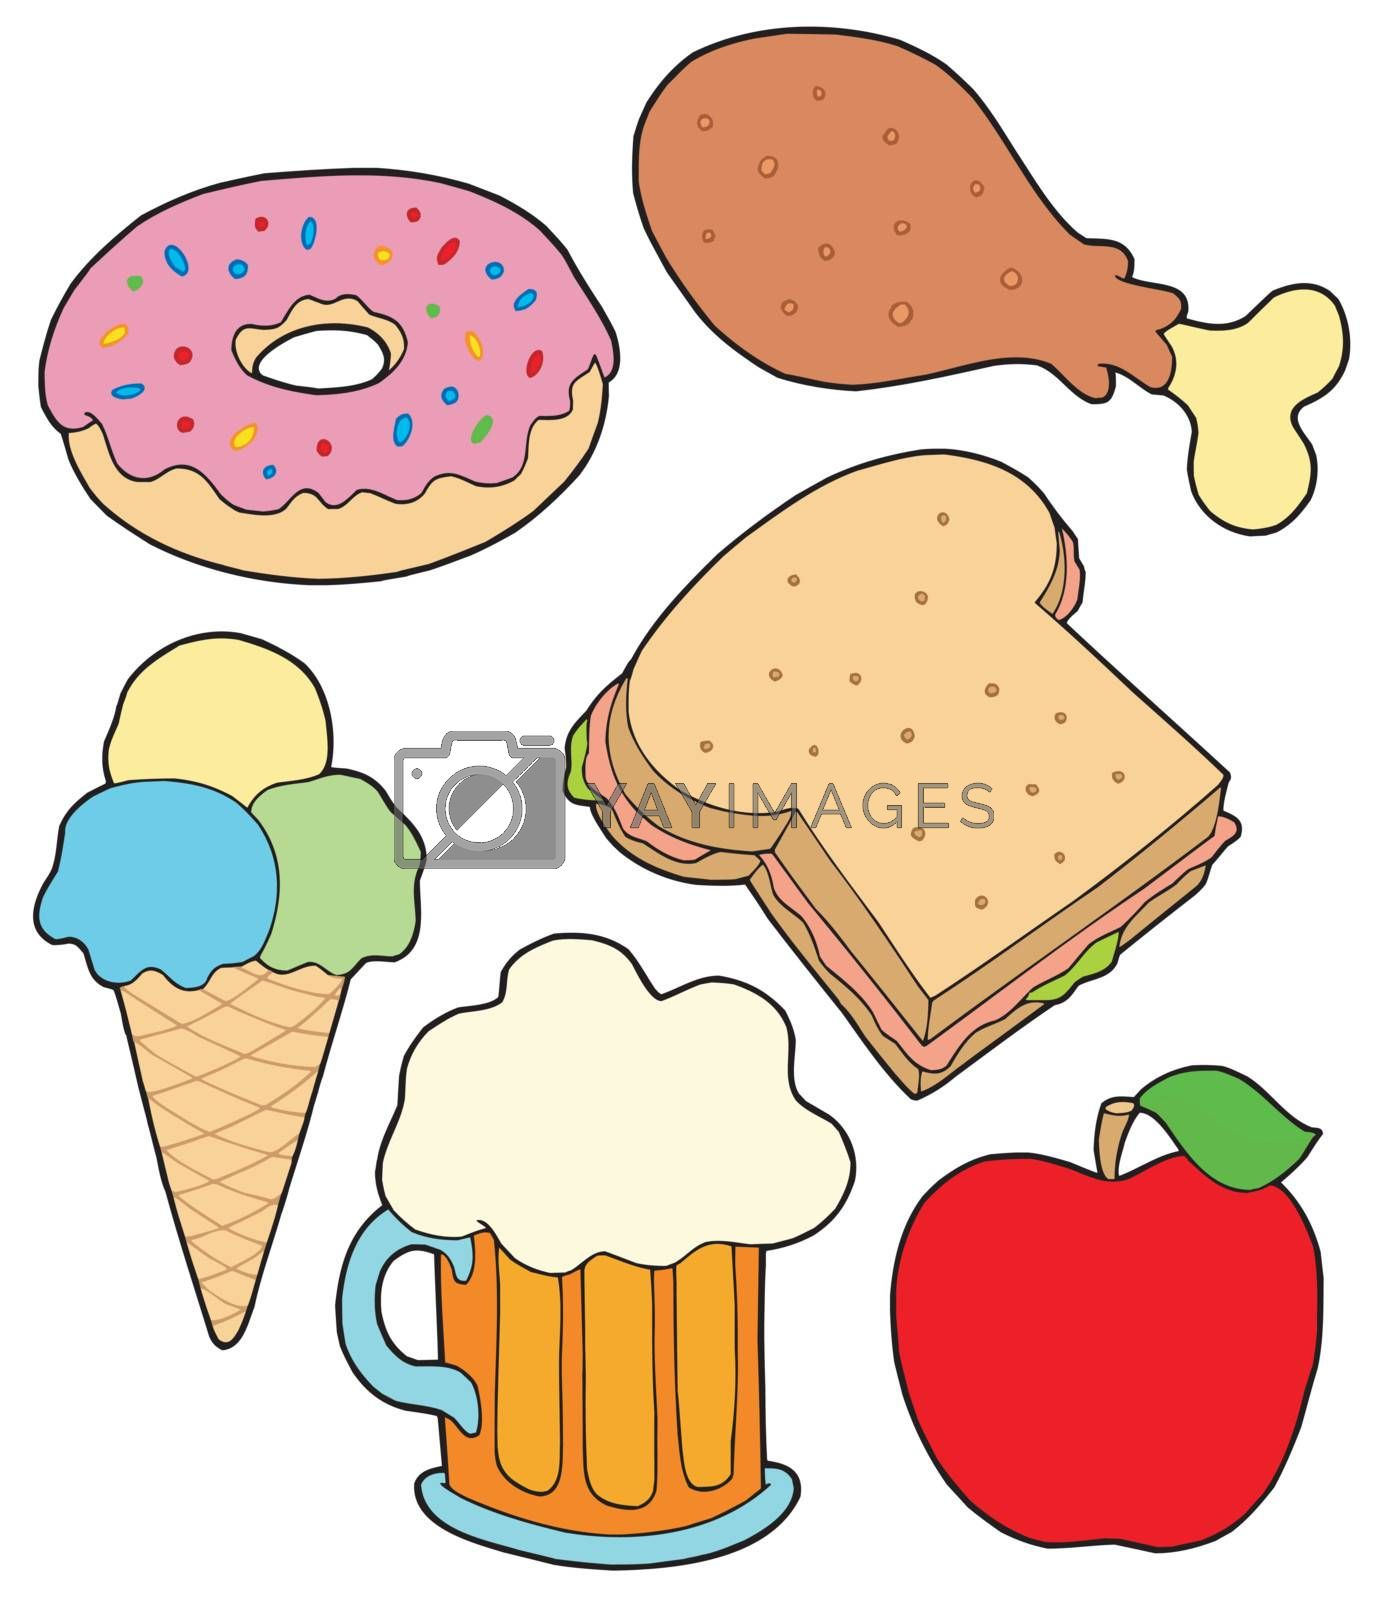 Food collection 2 on white background - vector illustration.